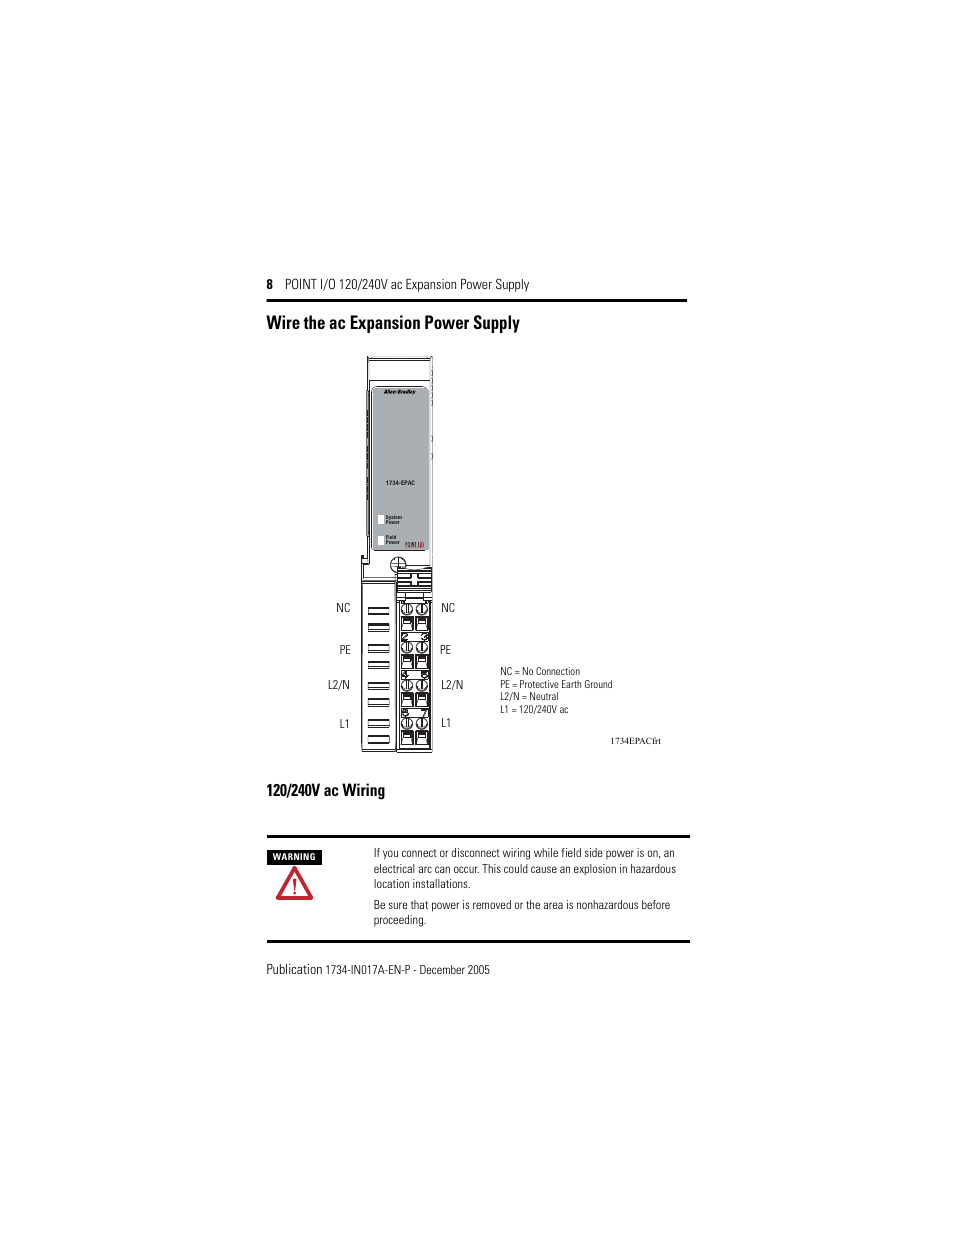 Wire the ac expansion power supply, 120/240v ac wiring | Rockwell  Automation 1734-EPAC POINT I/O ac Power Supply User Manual | Page 8 / 16